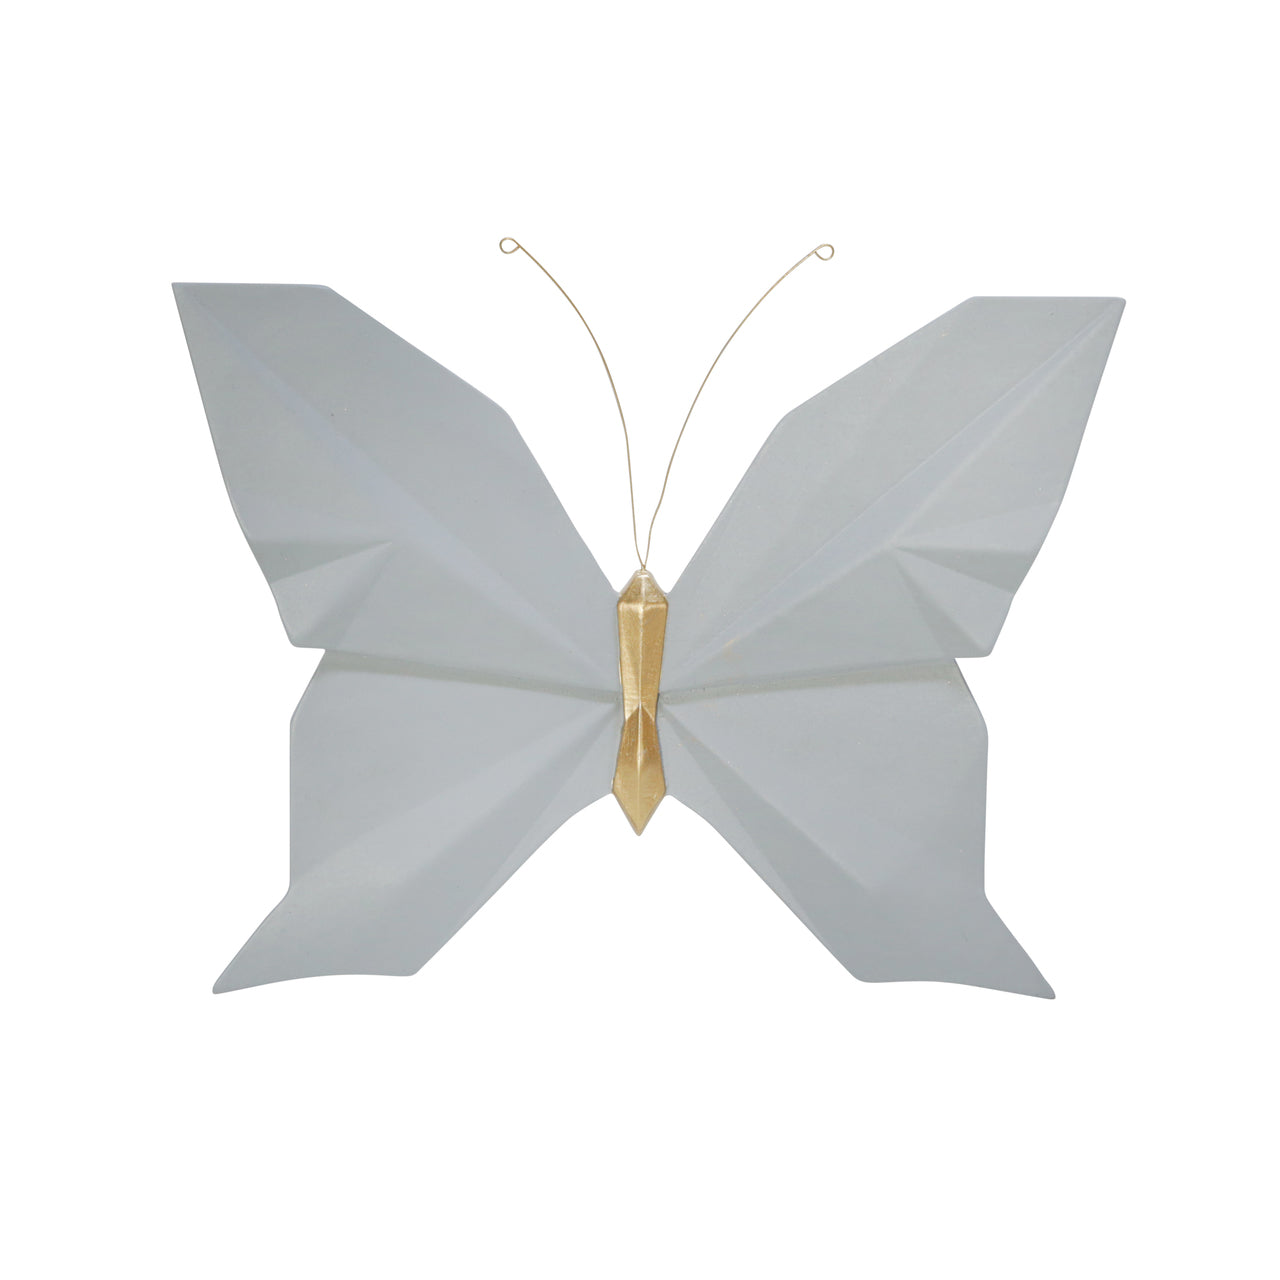 "RESIN 10"" W ORIGAMI BUTTERFLY WALL DECOR, SLATE - Casa Muebles"